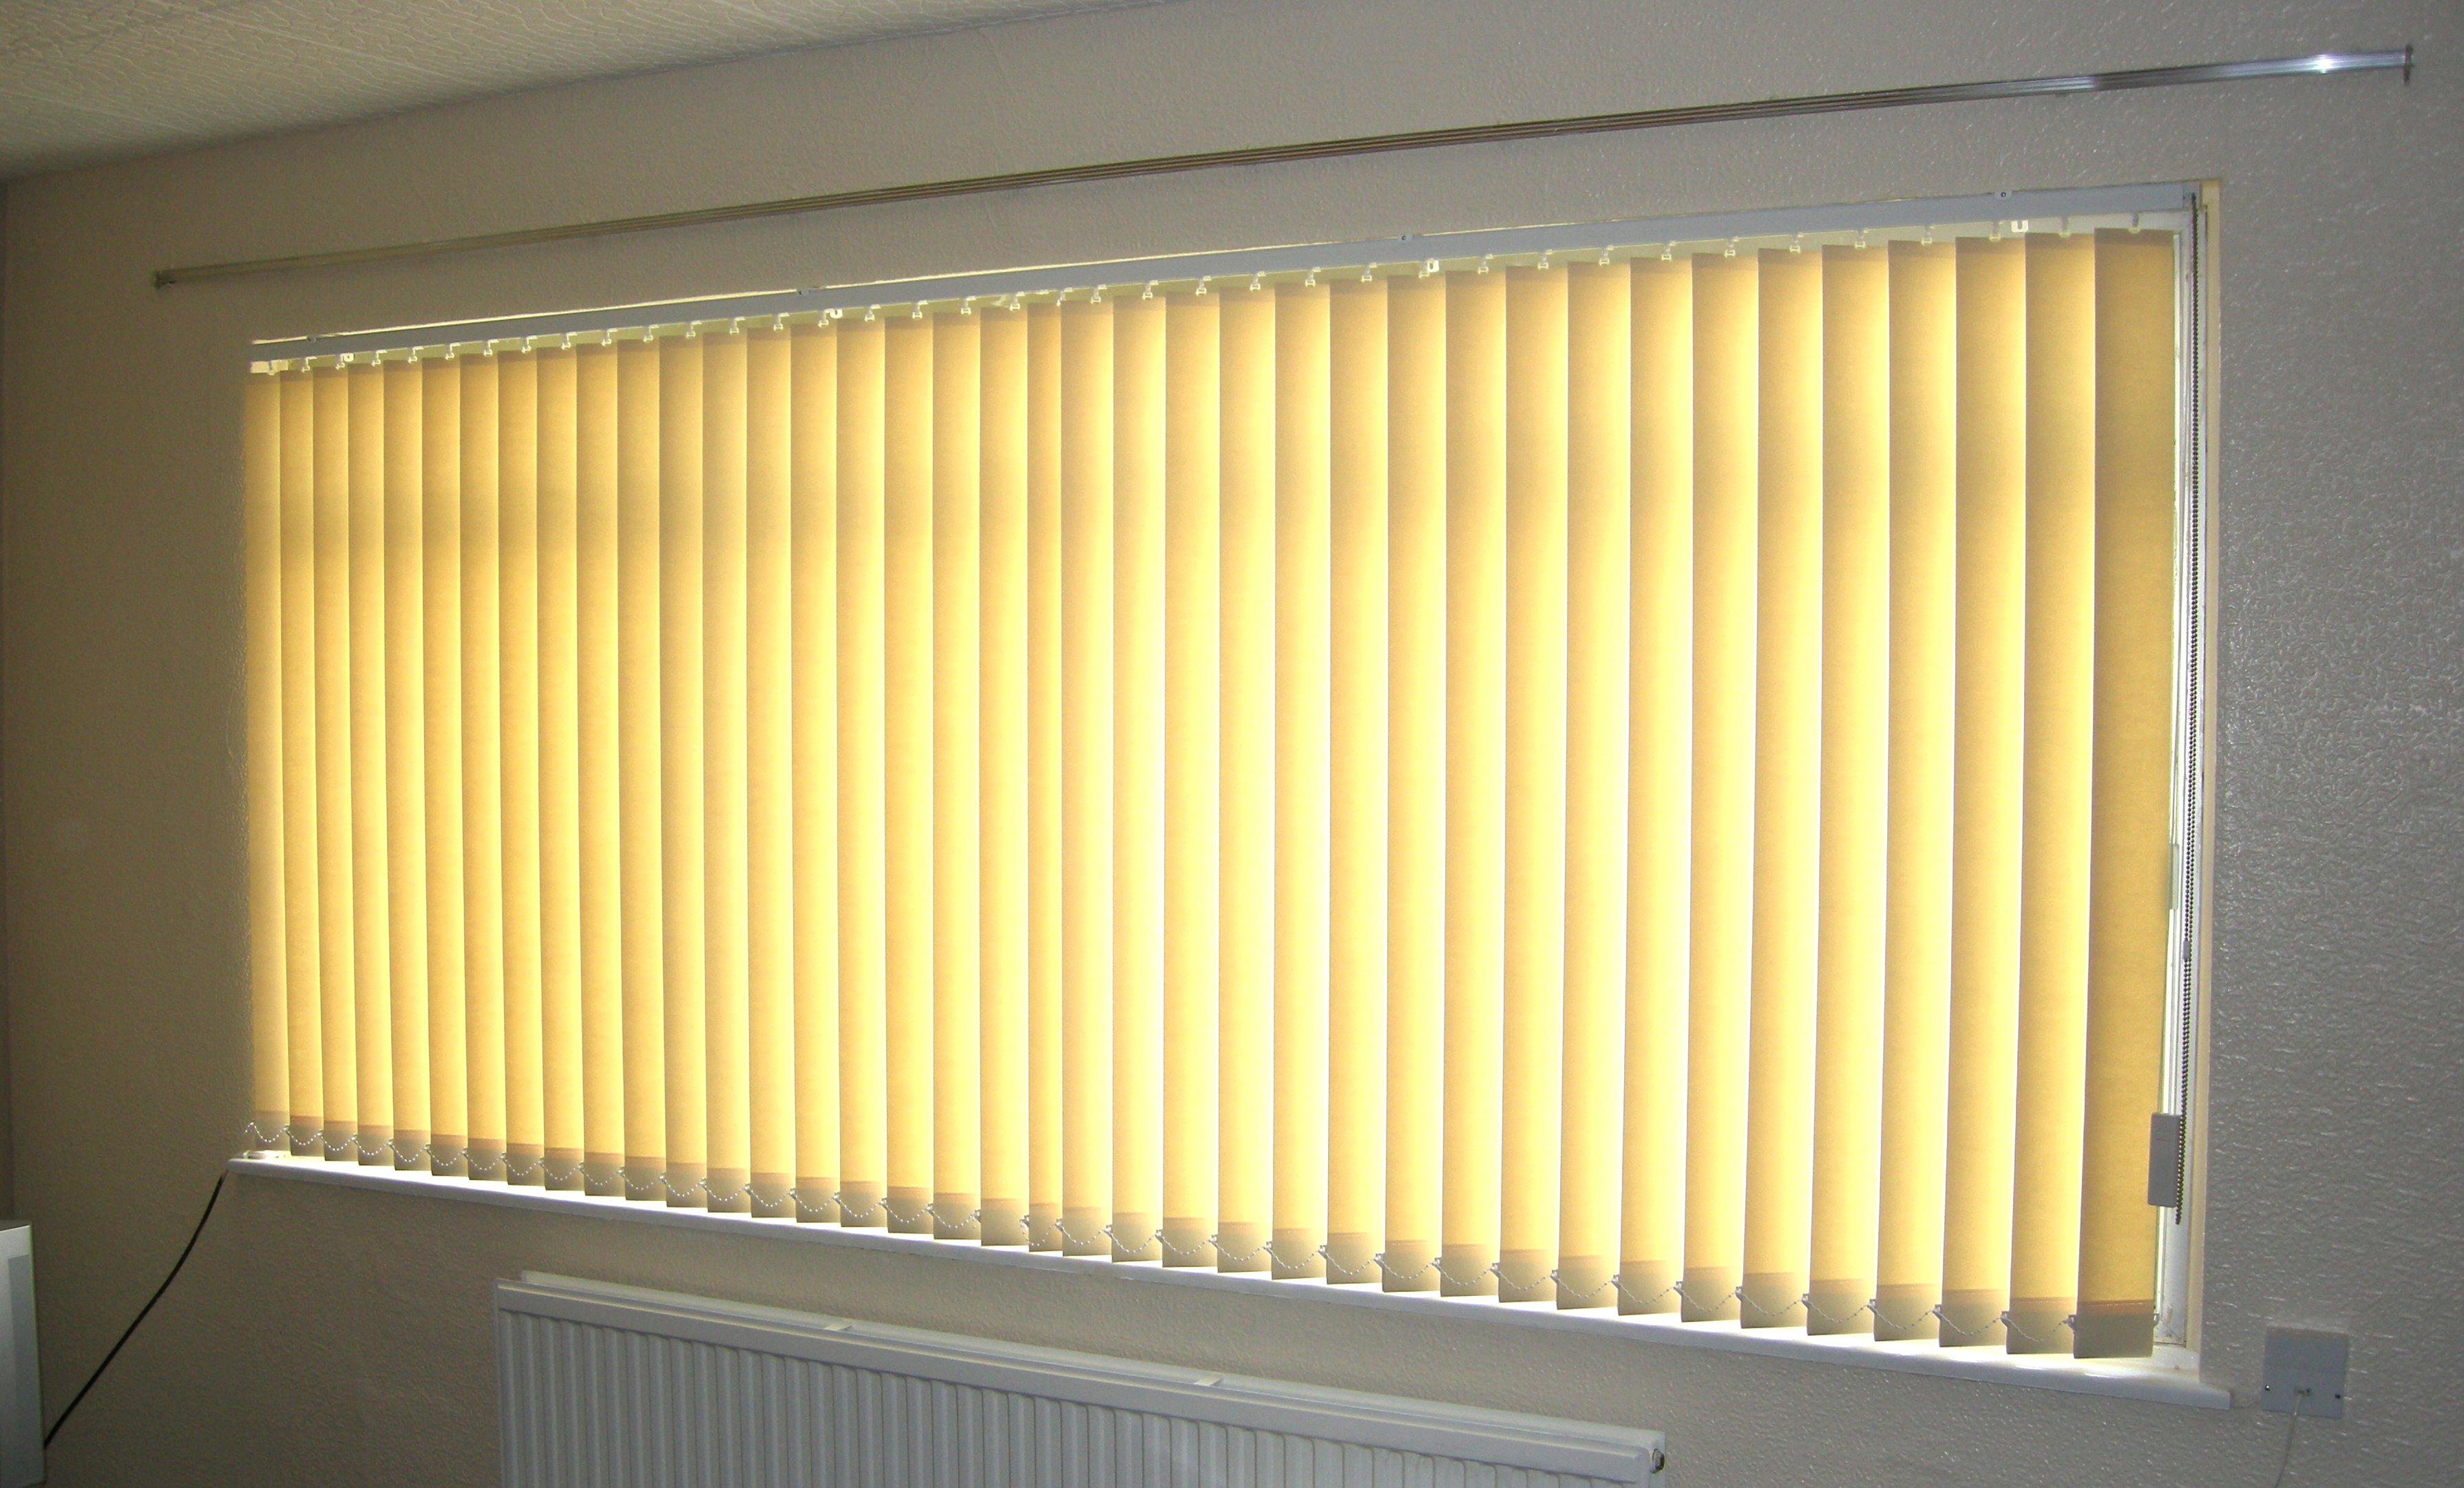 Design Types Of Blinds most common types of window blinds homesfeed bright yellow vertical blind for office